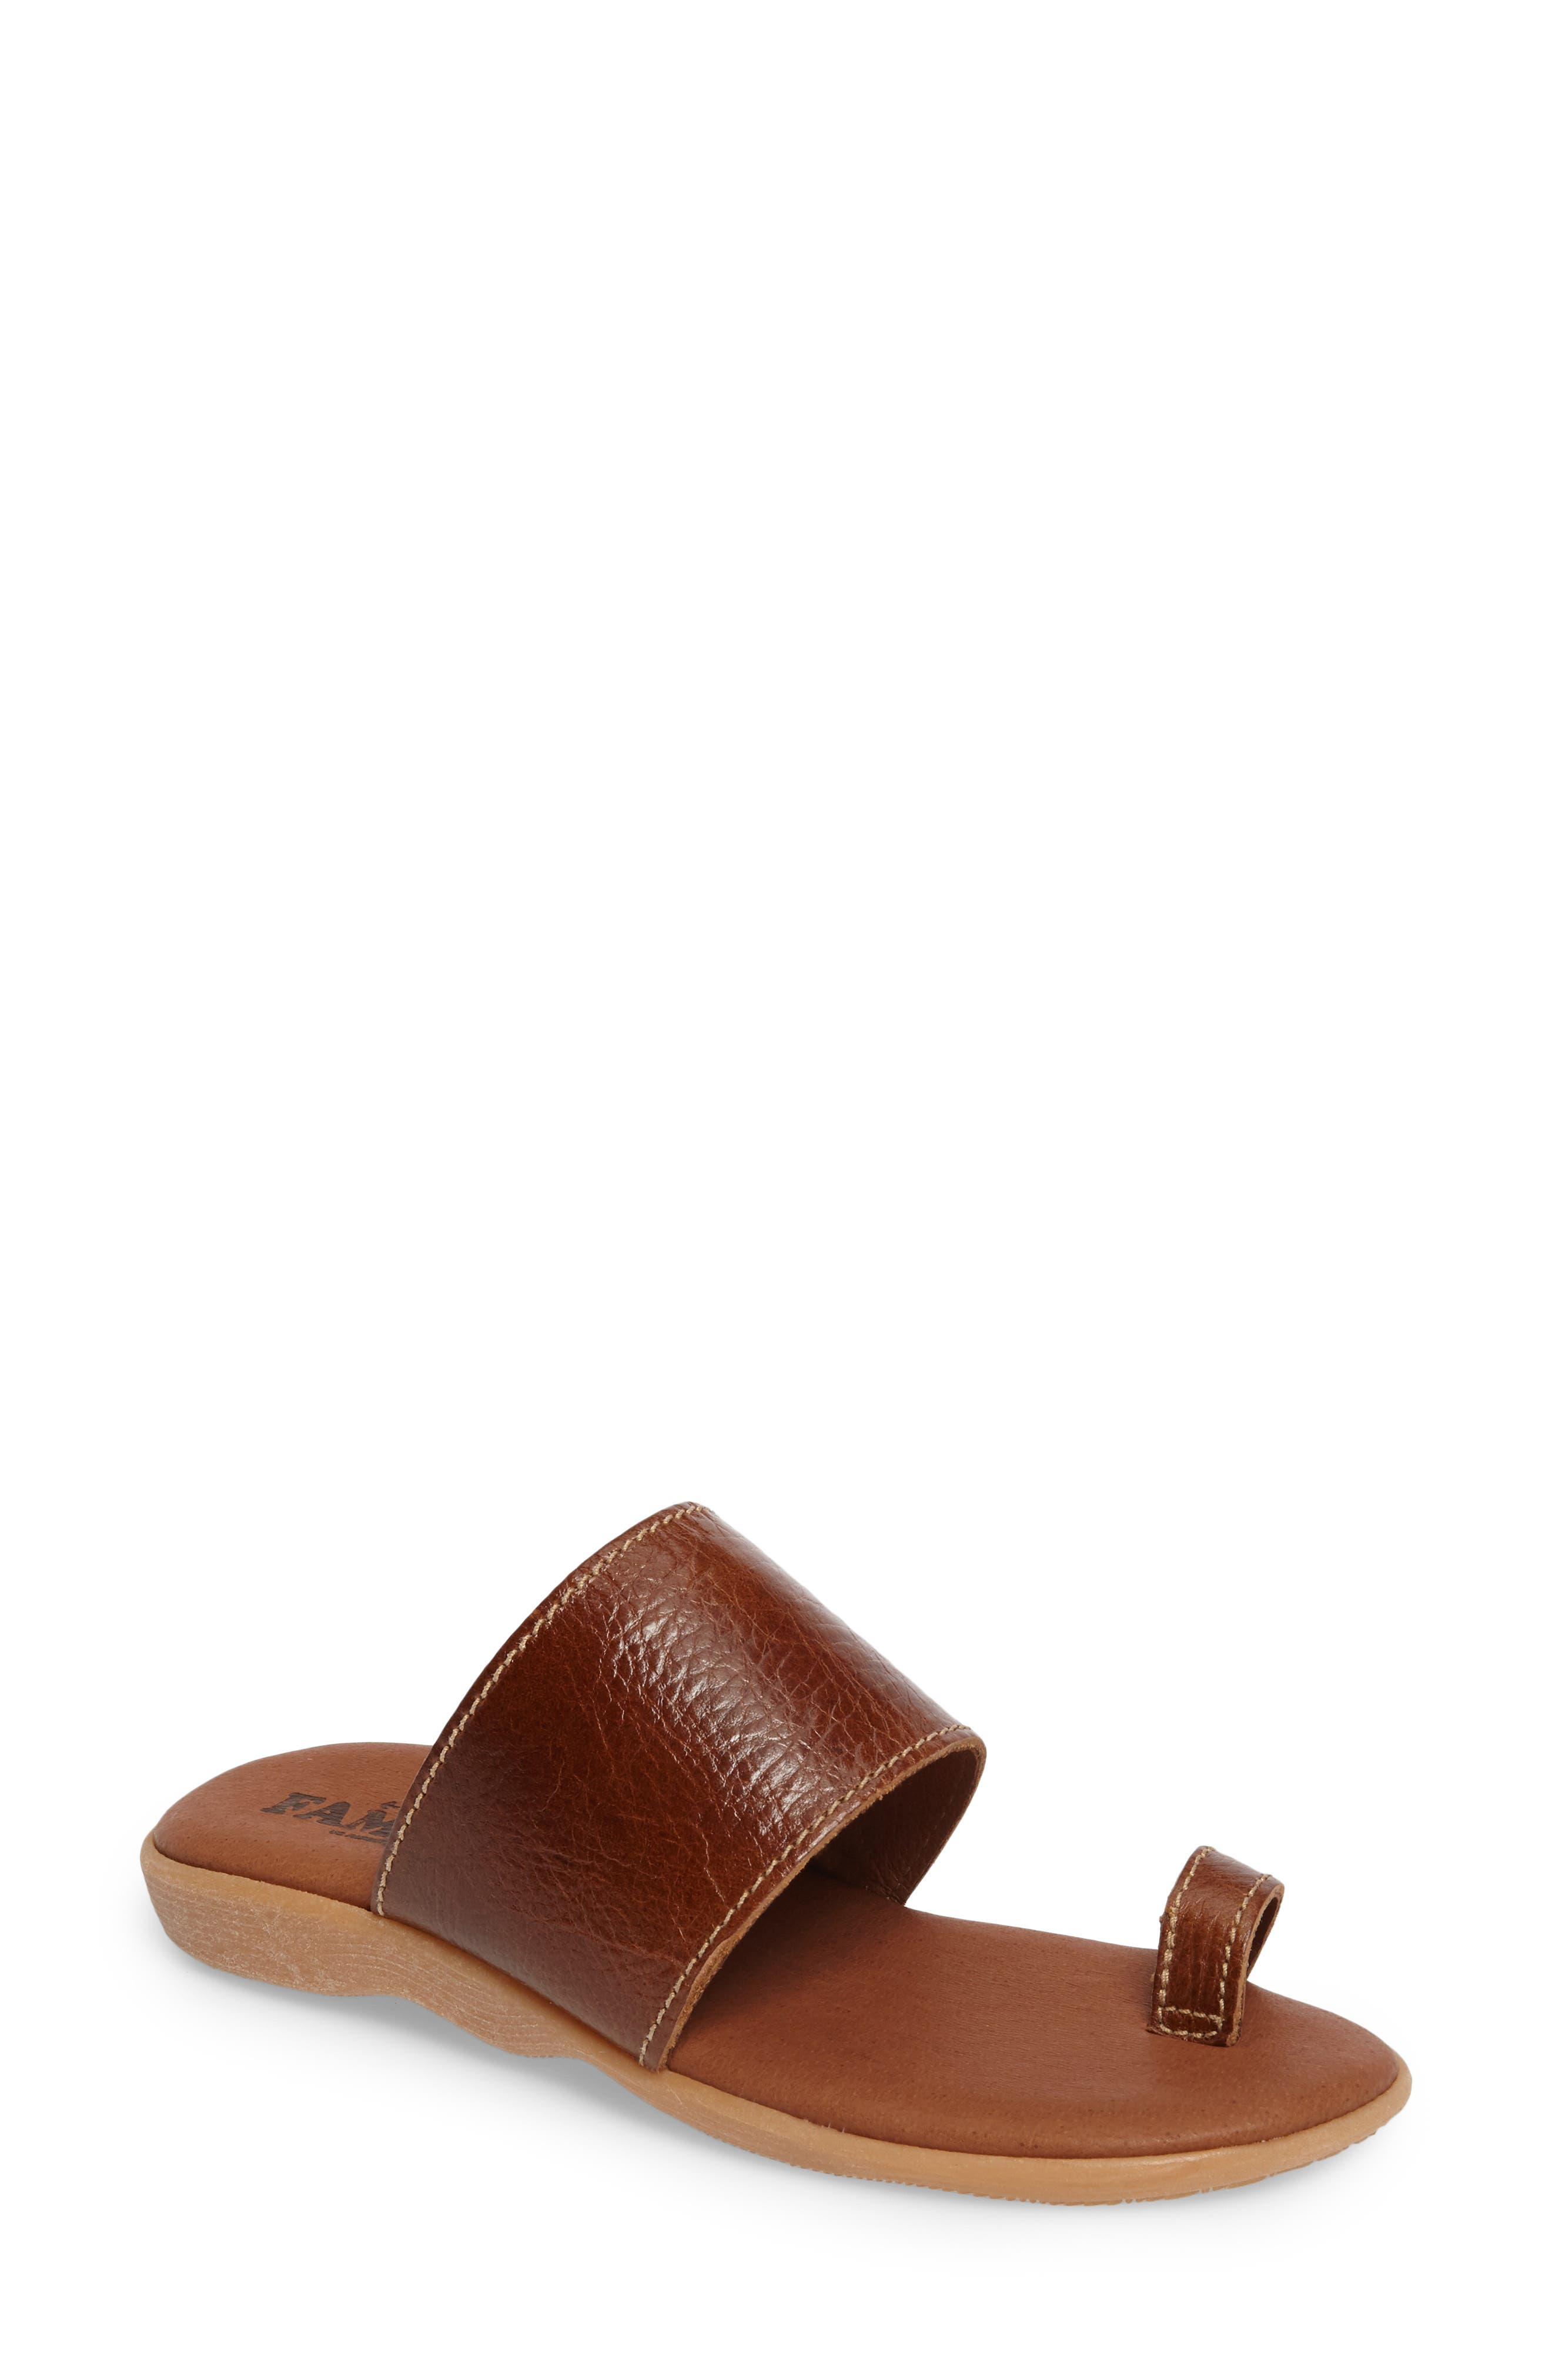 Alternate Image 1 Selected - Famolare Band & Deliver Toe Loop Slide Sandal (Women)